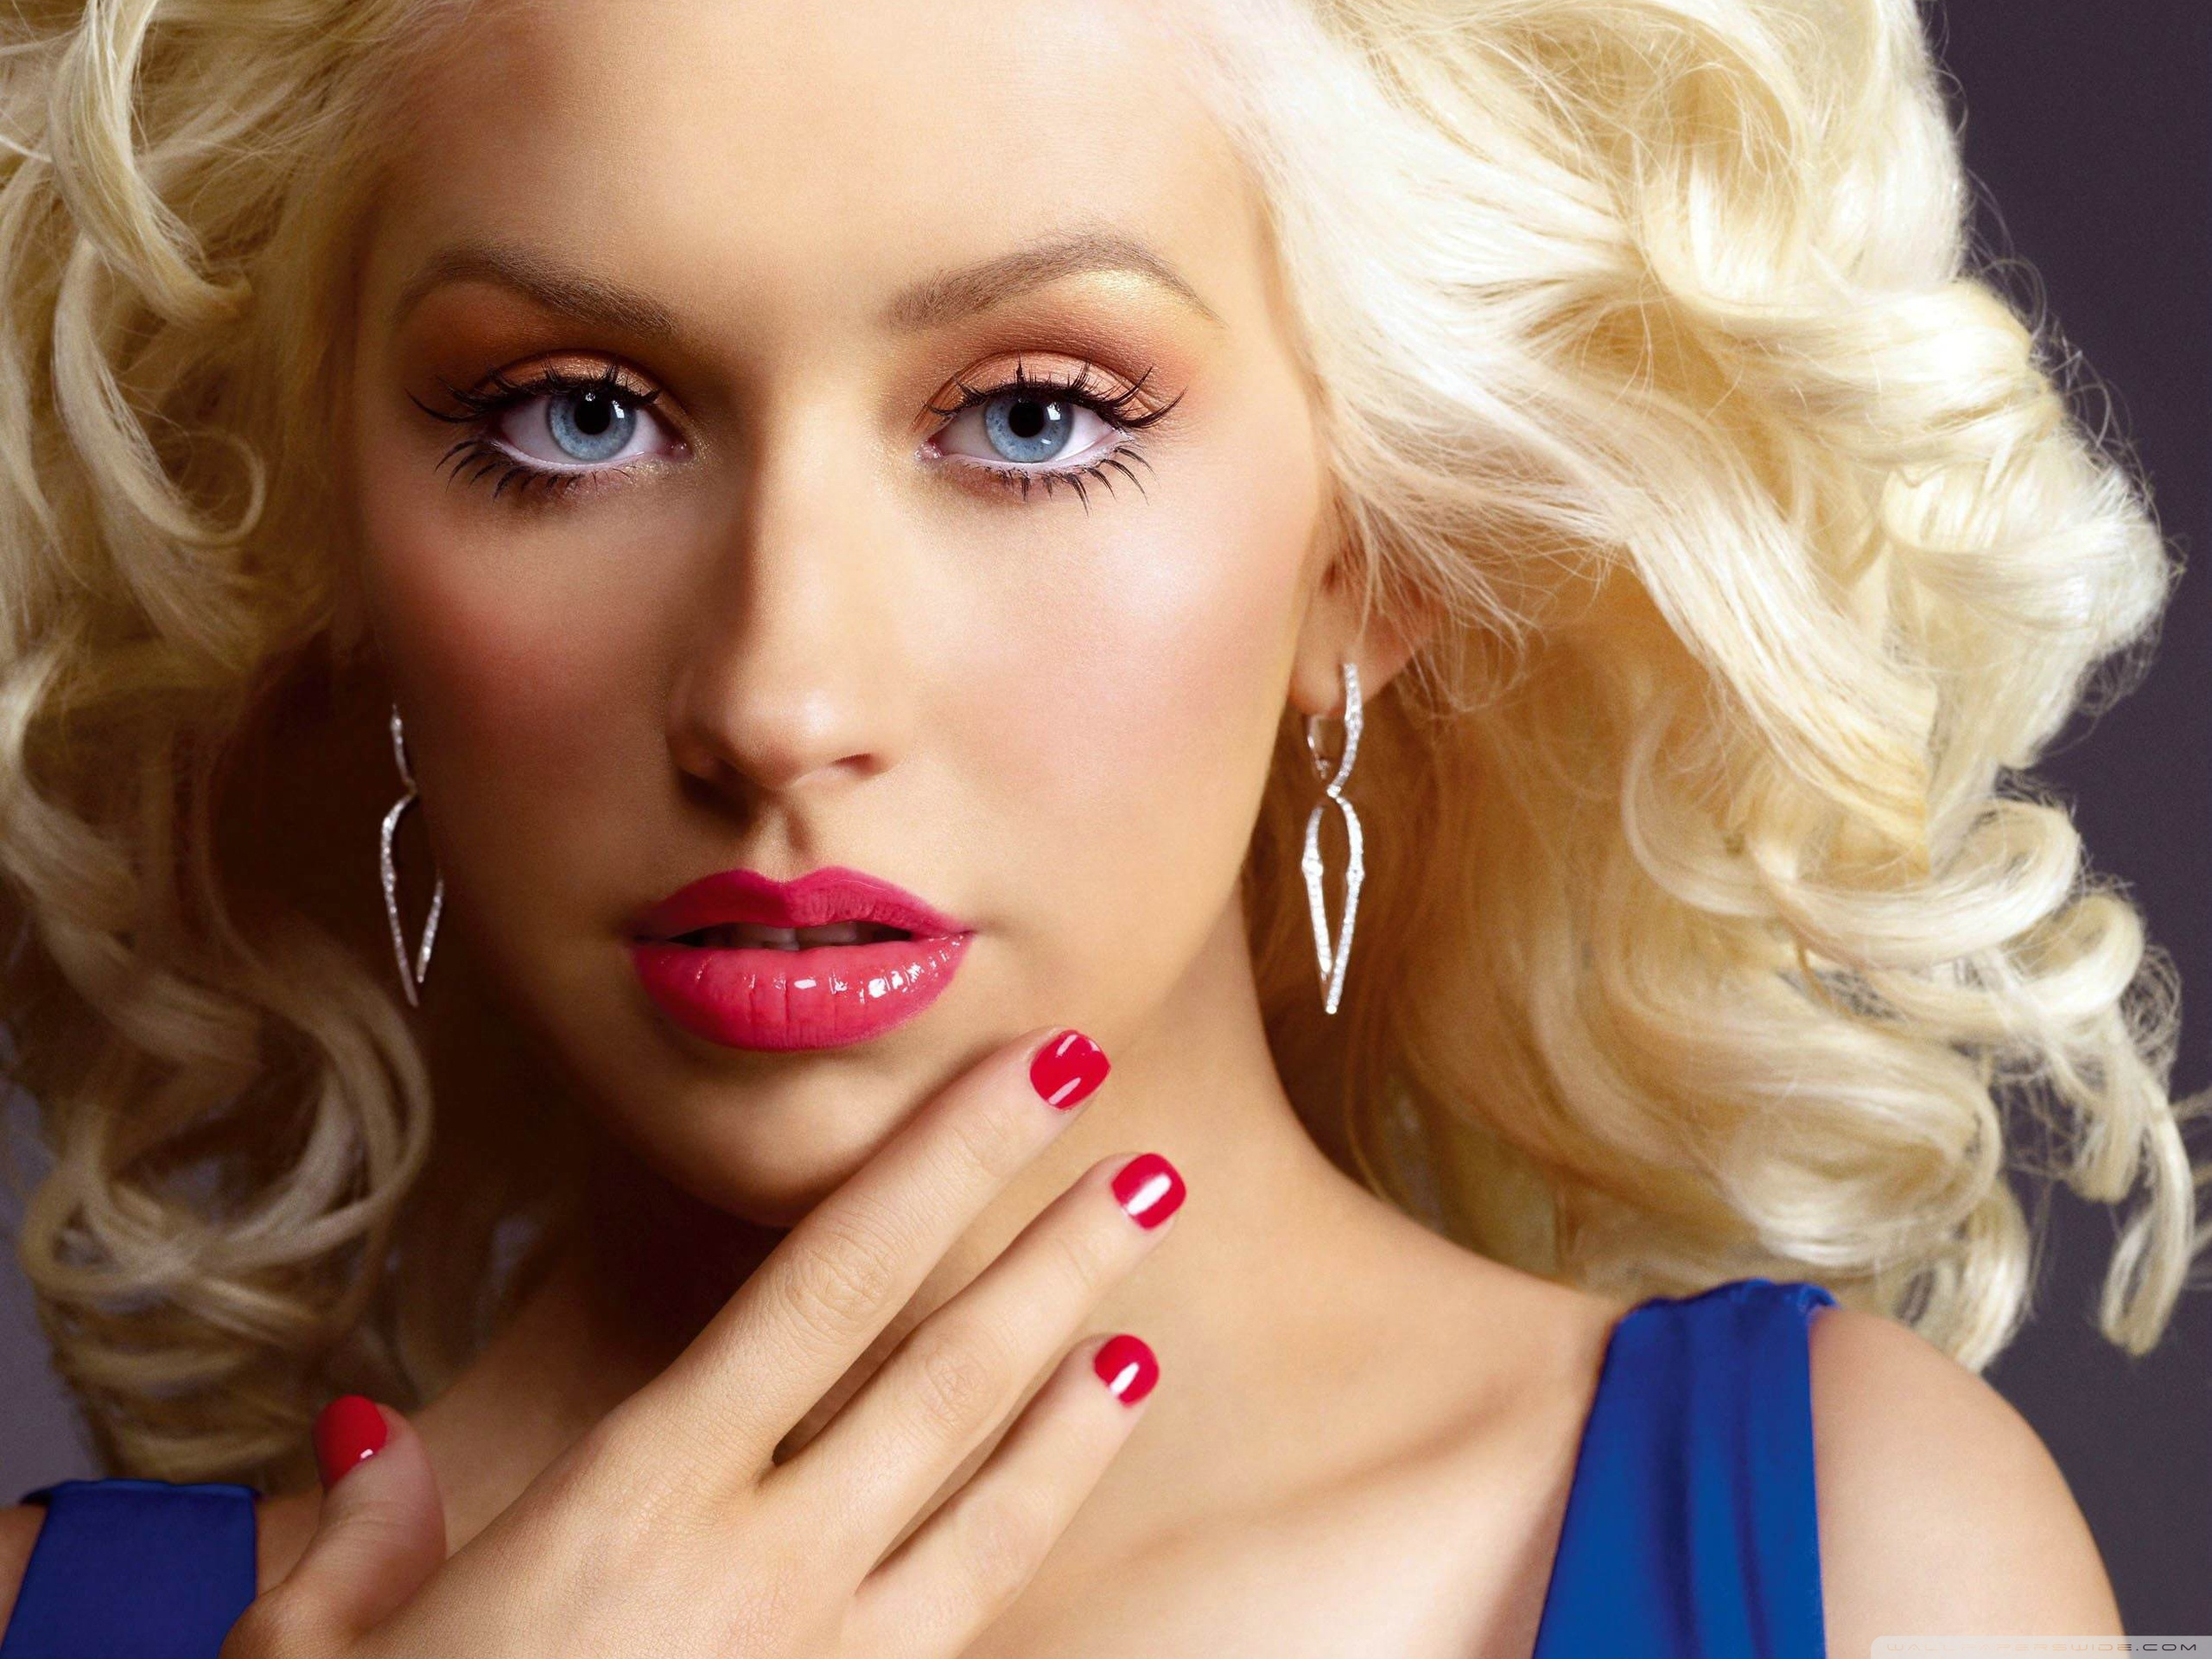 Christina Aguilera Wallpapers Widescreen 55189BA   4USkY 2560x1920